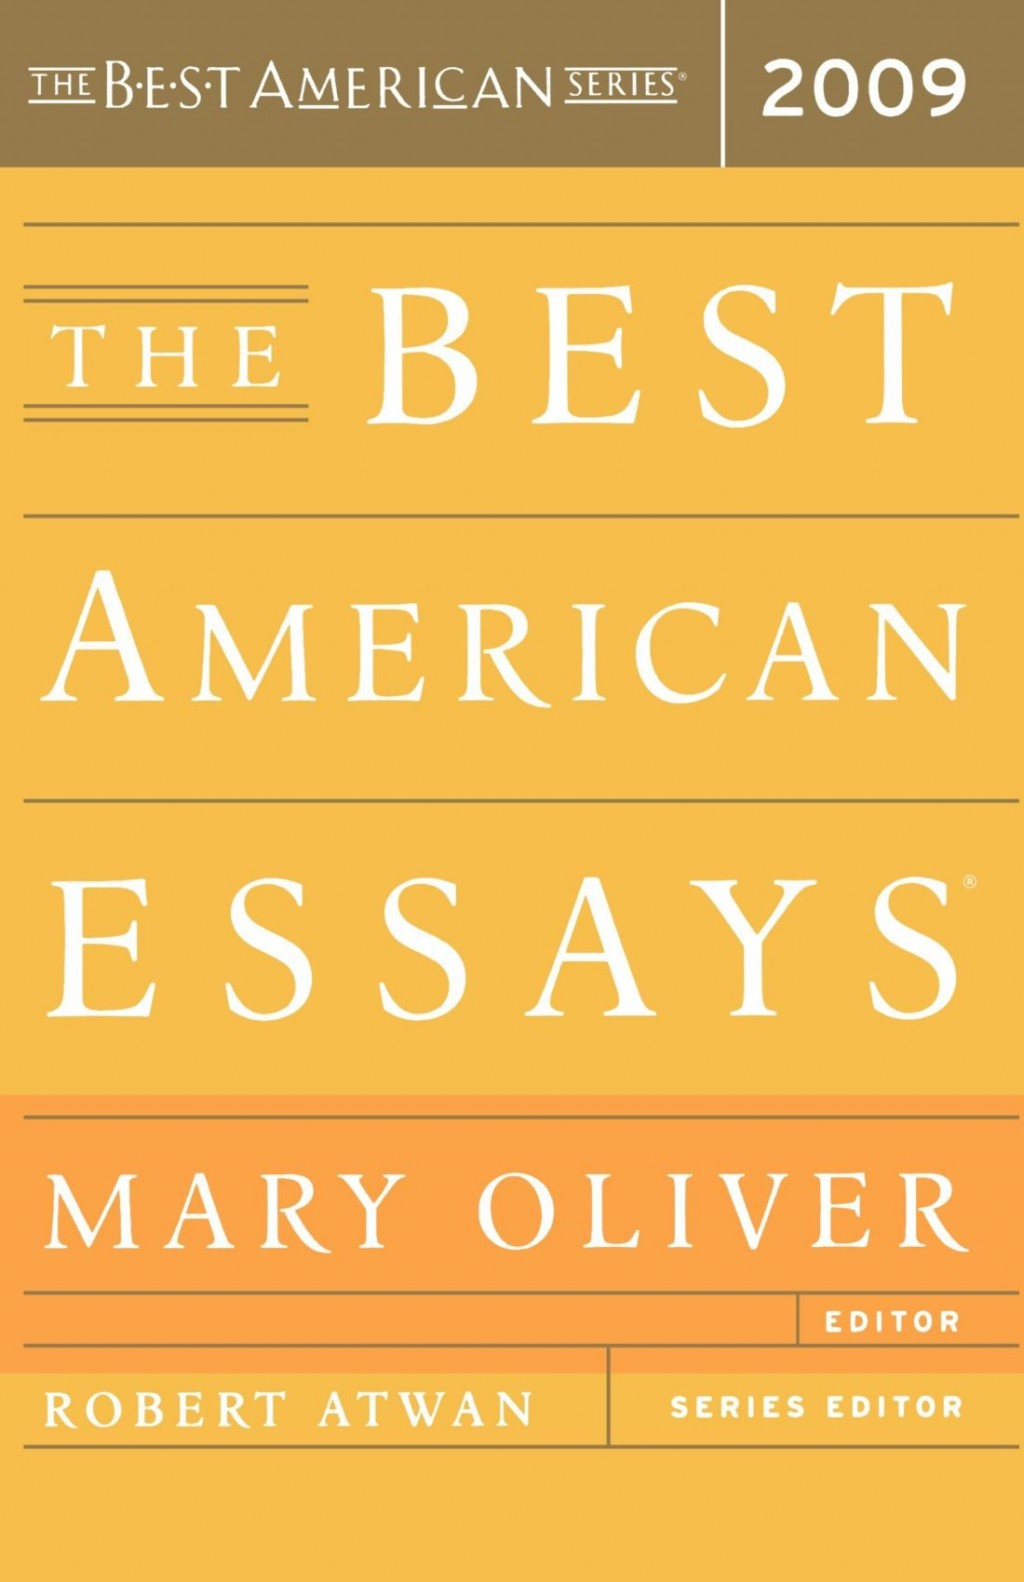 008 617qb5slhfl Essay Example The Best American Wonderful Essays 2013 Pdf Download Of Century Sparknotes 2017 Large